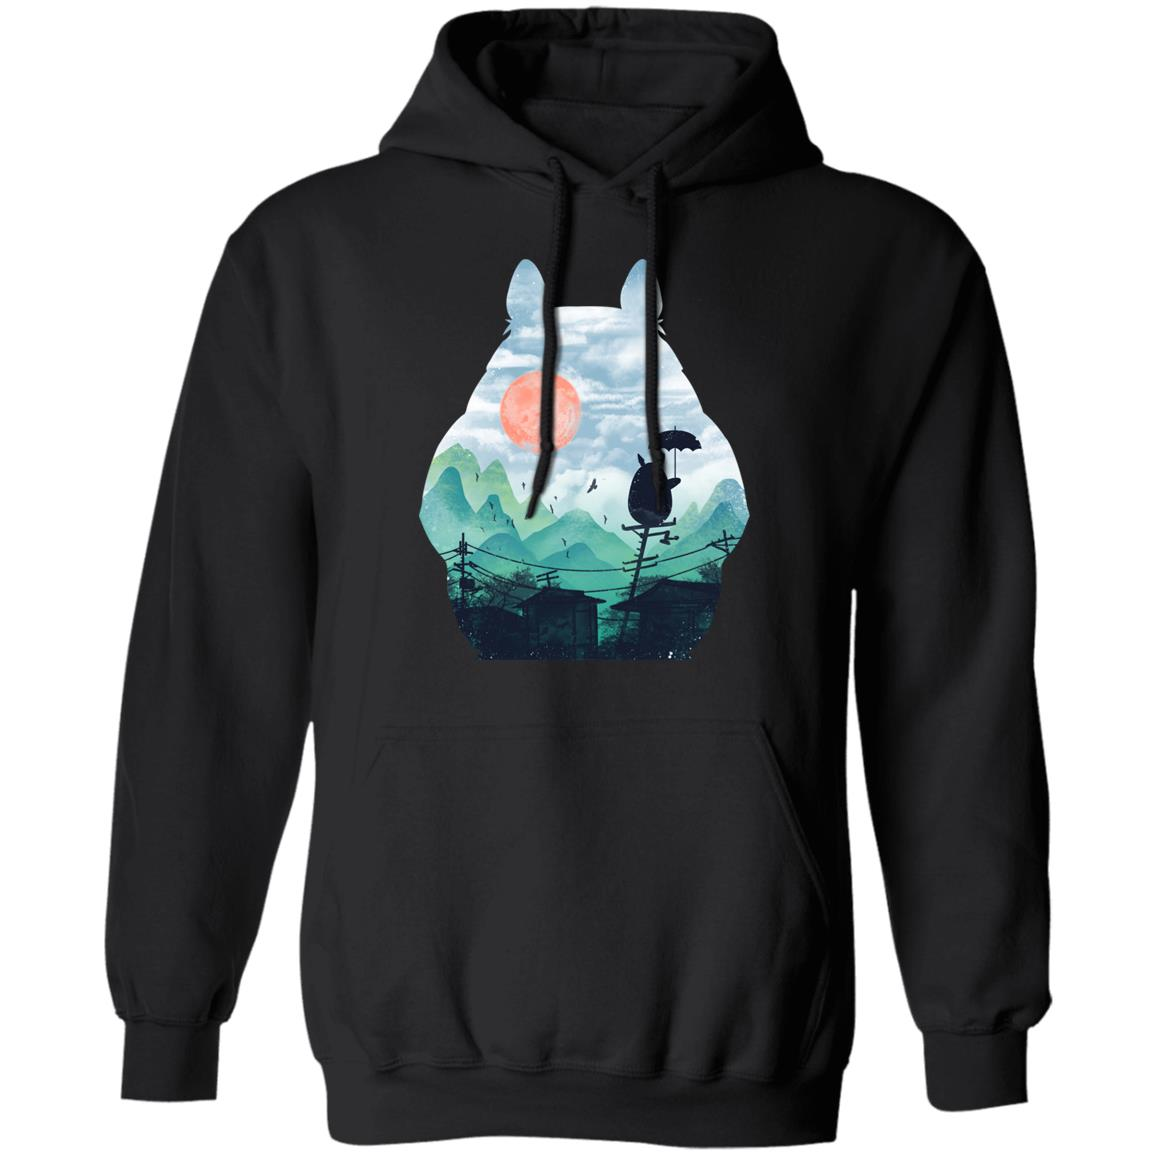 Totoro on the Line Lanscape Hoodie